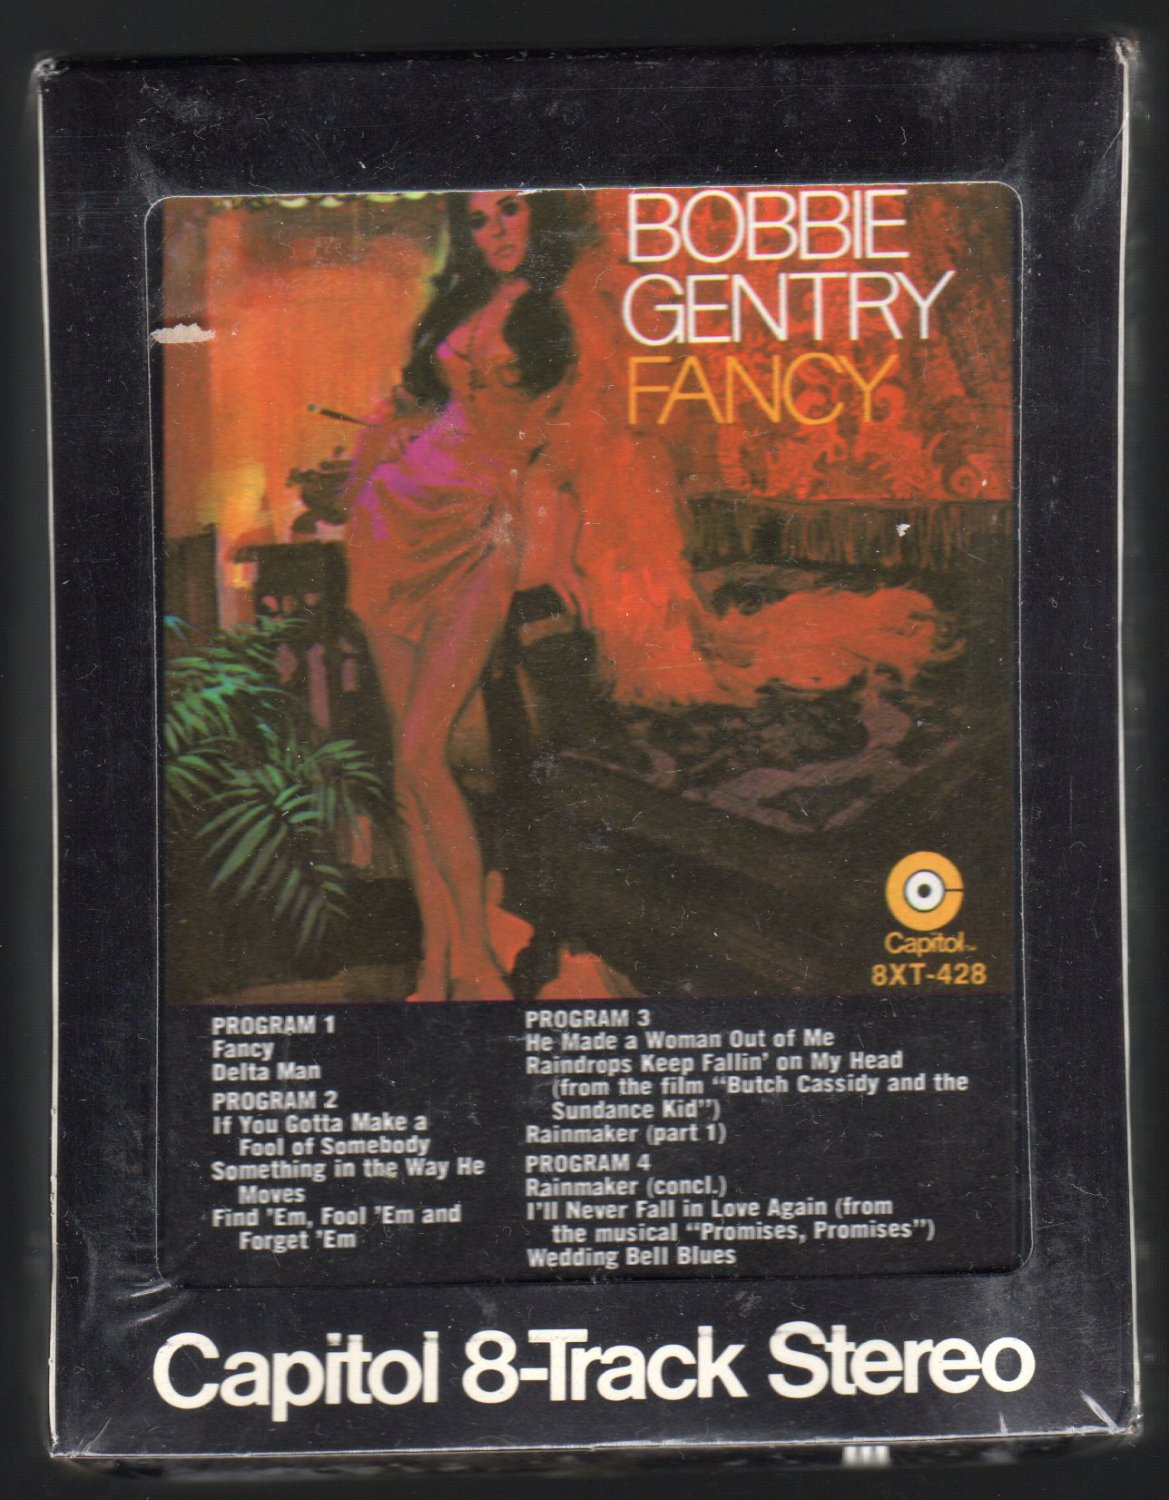 Bobbie Gentry - Fancy 1970 CAPITOL Sealed A34 8-TRACK TAPE